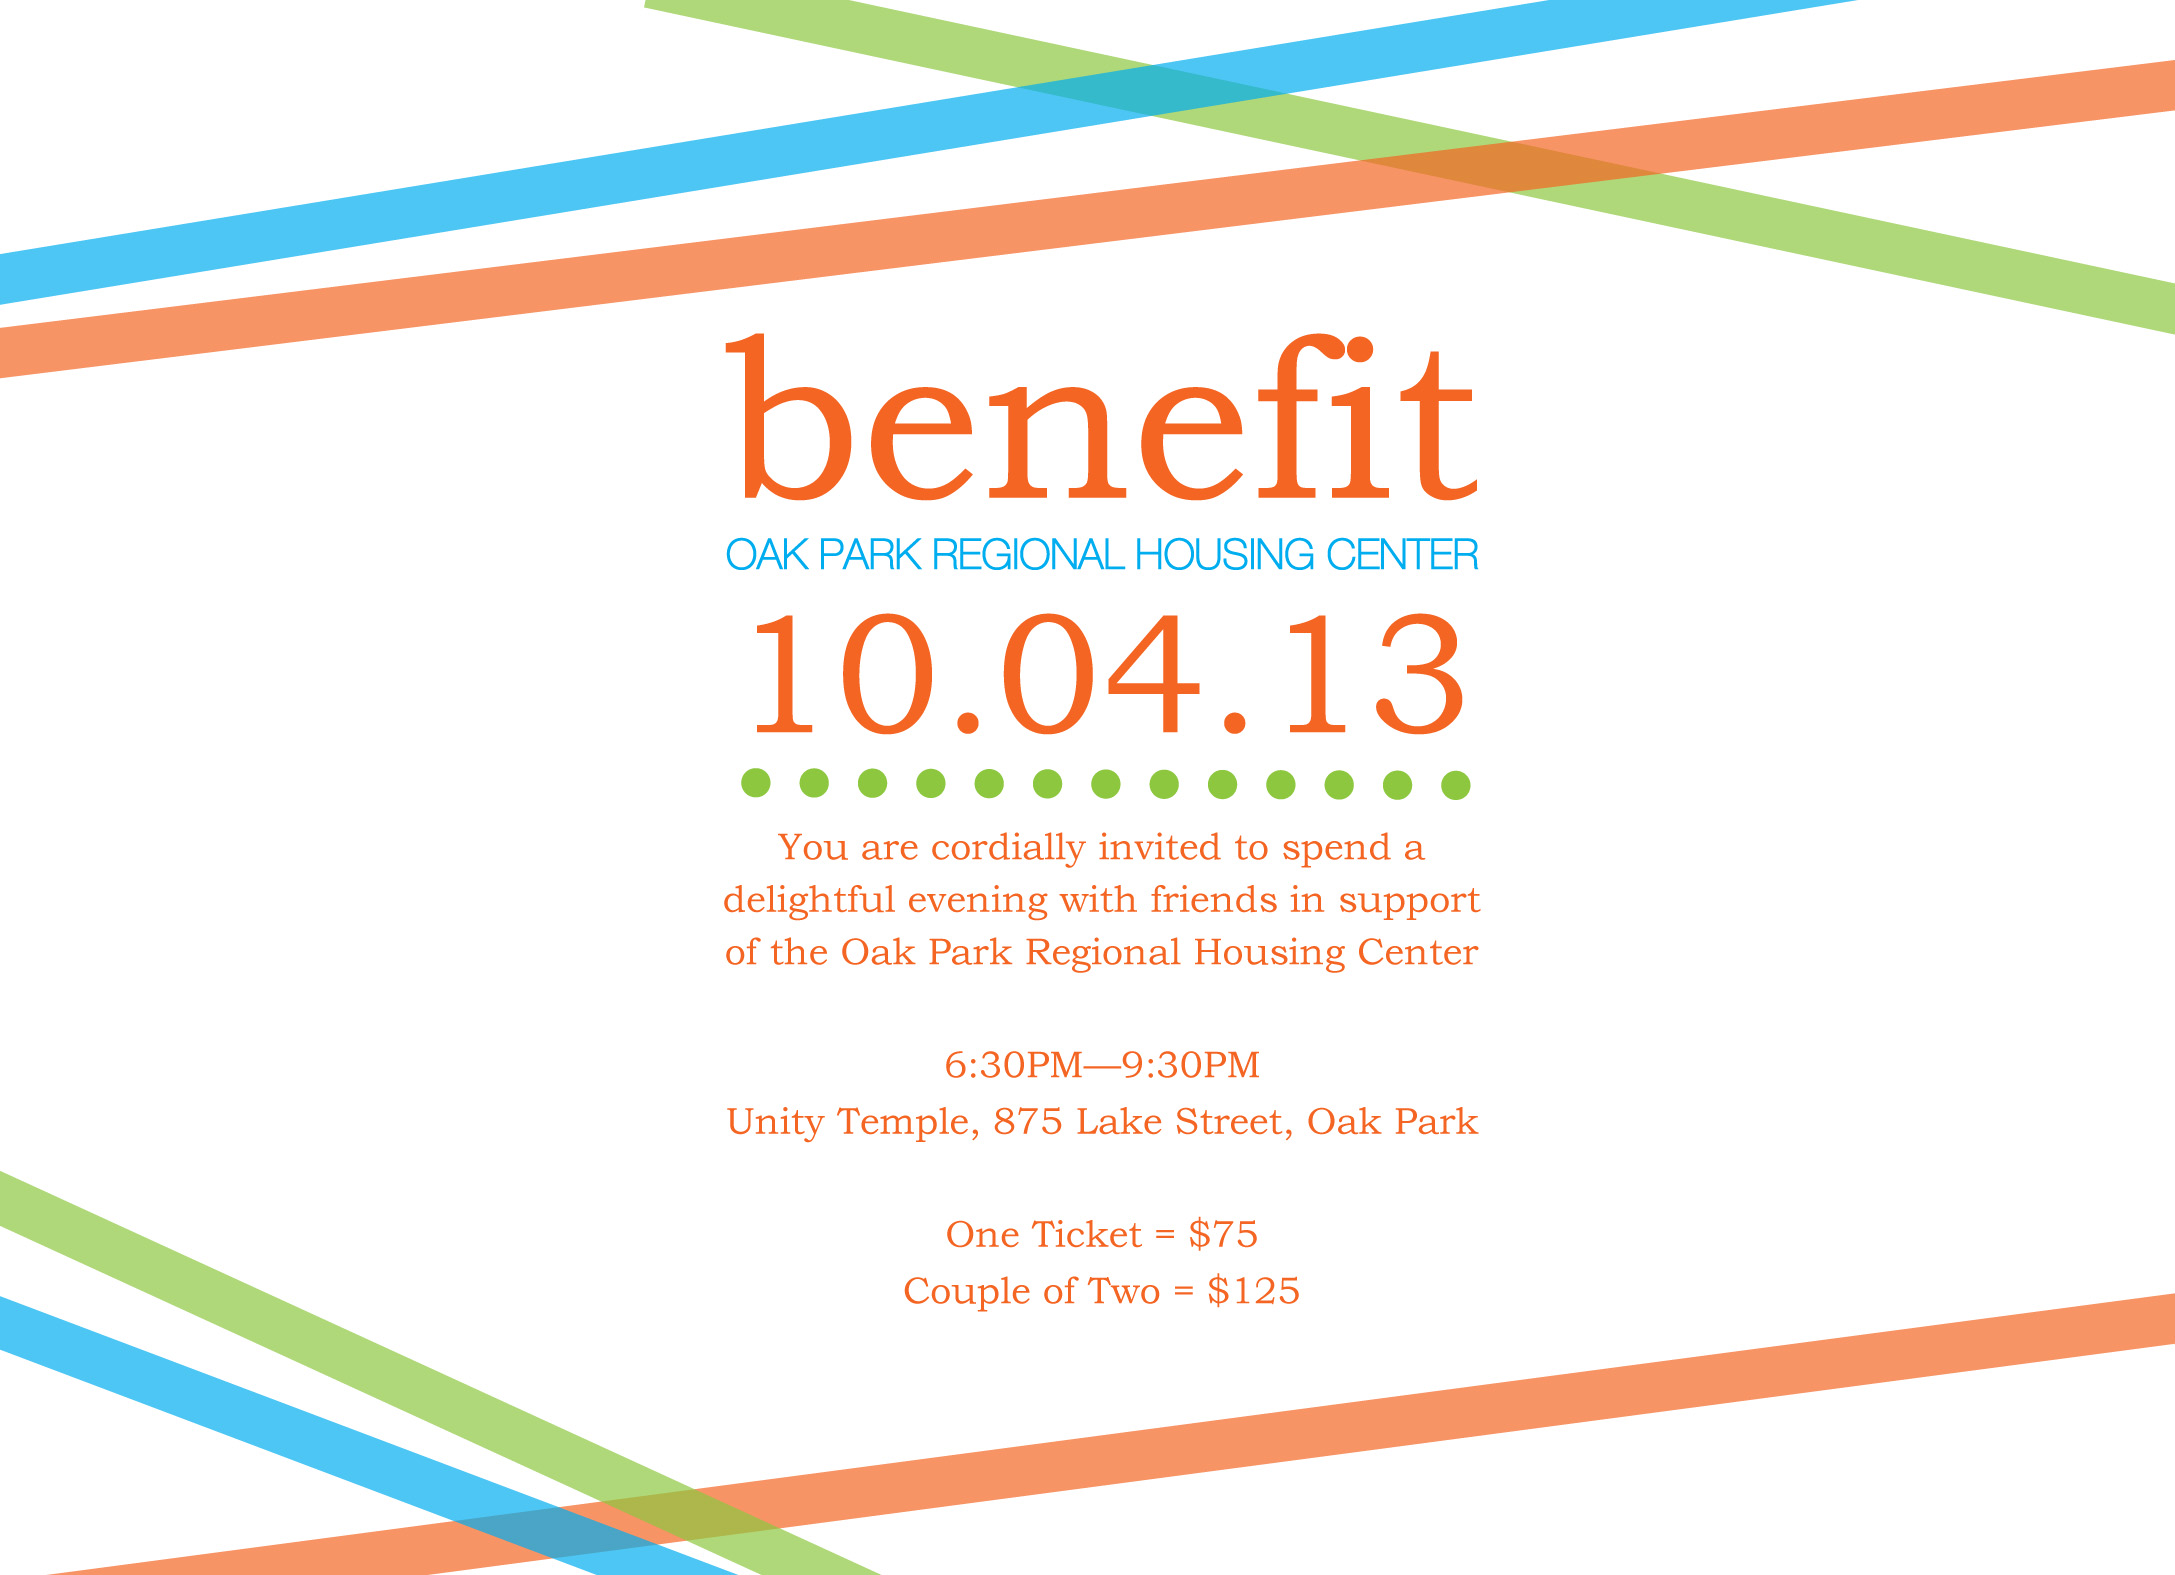 Benefit Invitation 9.6.13 – Oak Park Regional Housing Center